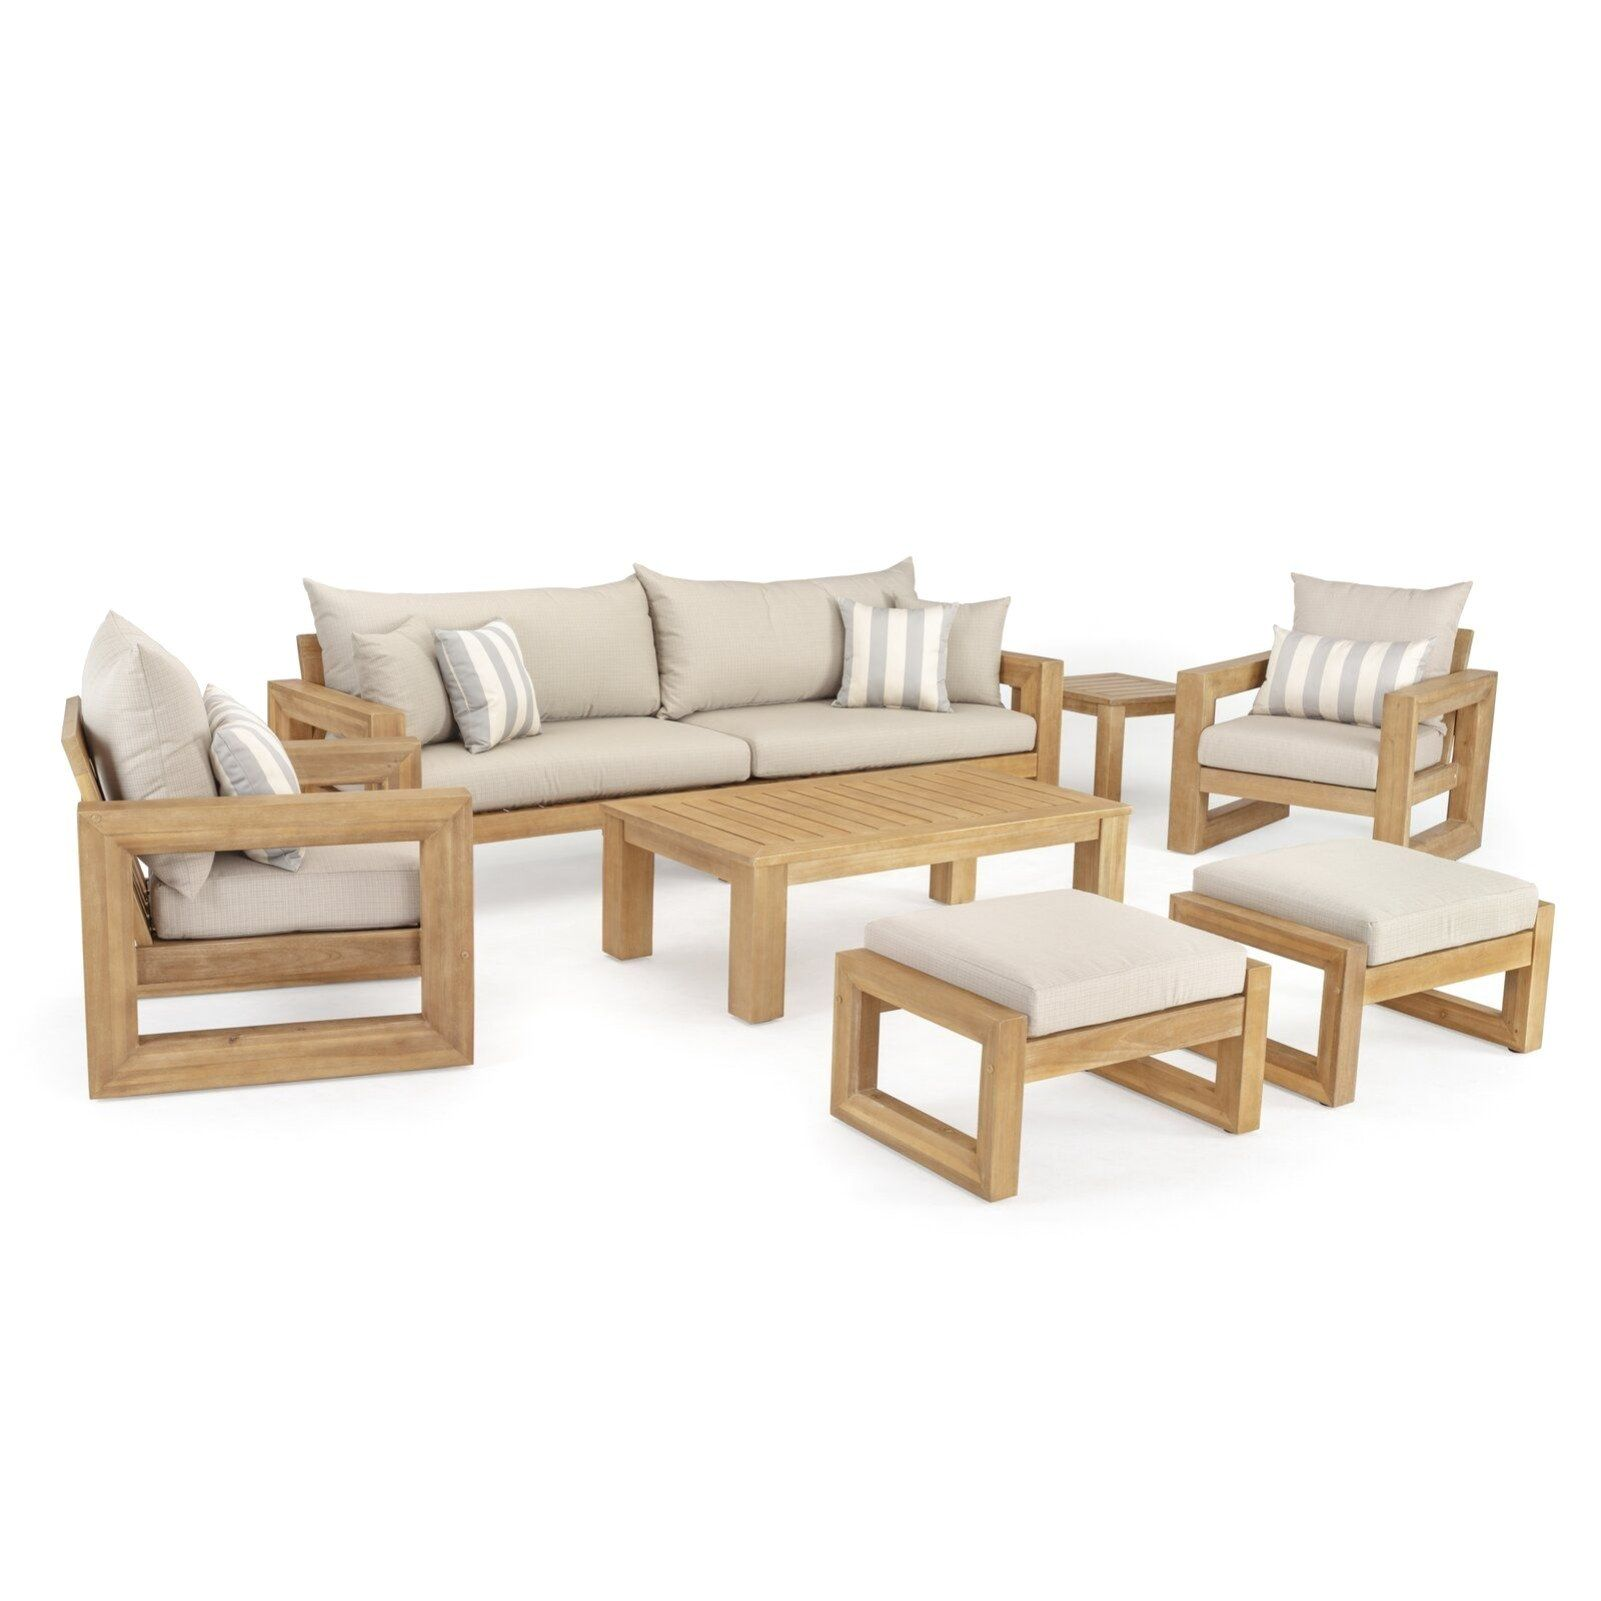 Mcclain 8 Piece Sunbrella Sofa Seating Group With Cushions In 2020 Wooden Sofa Wooden Sofa Designs Outdoor Sofa